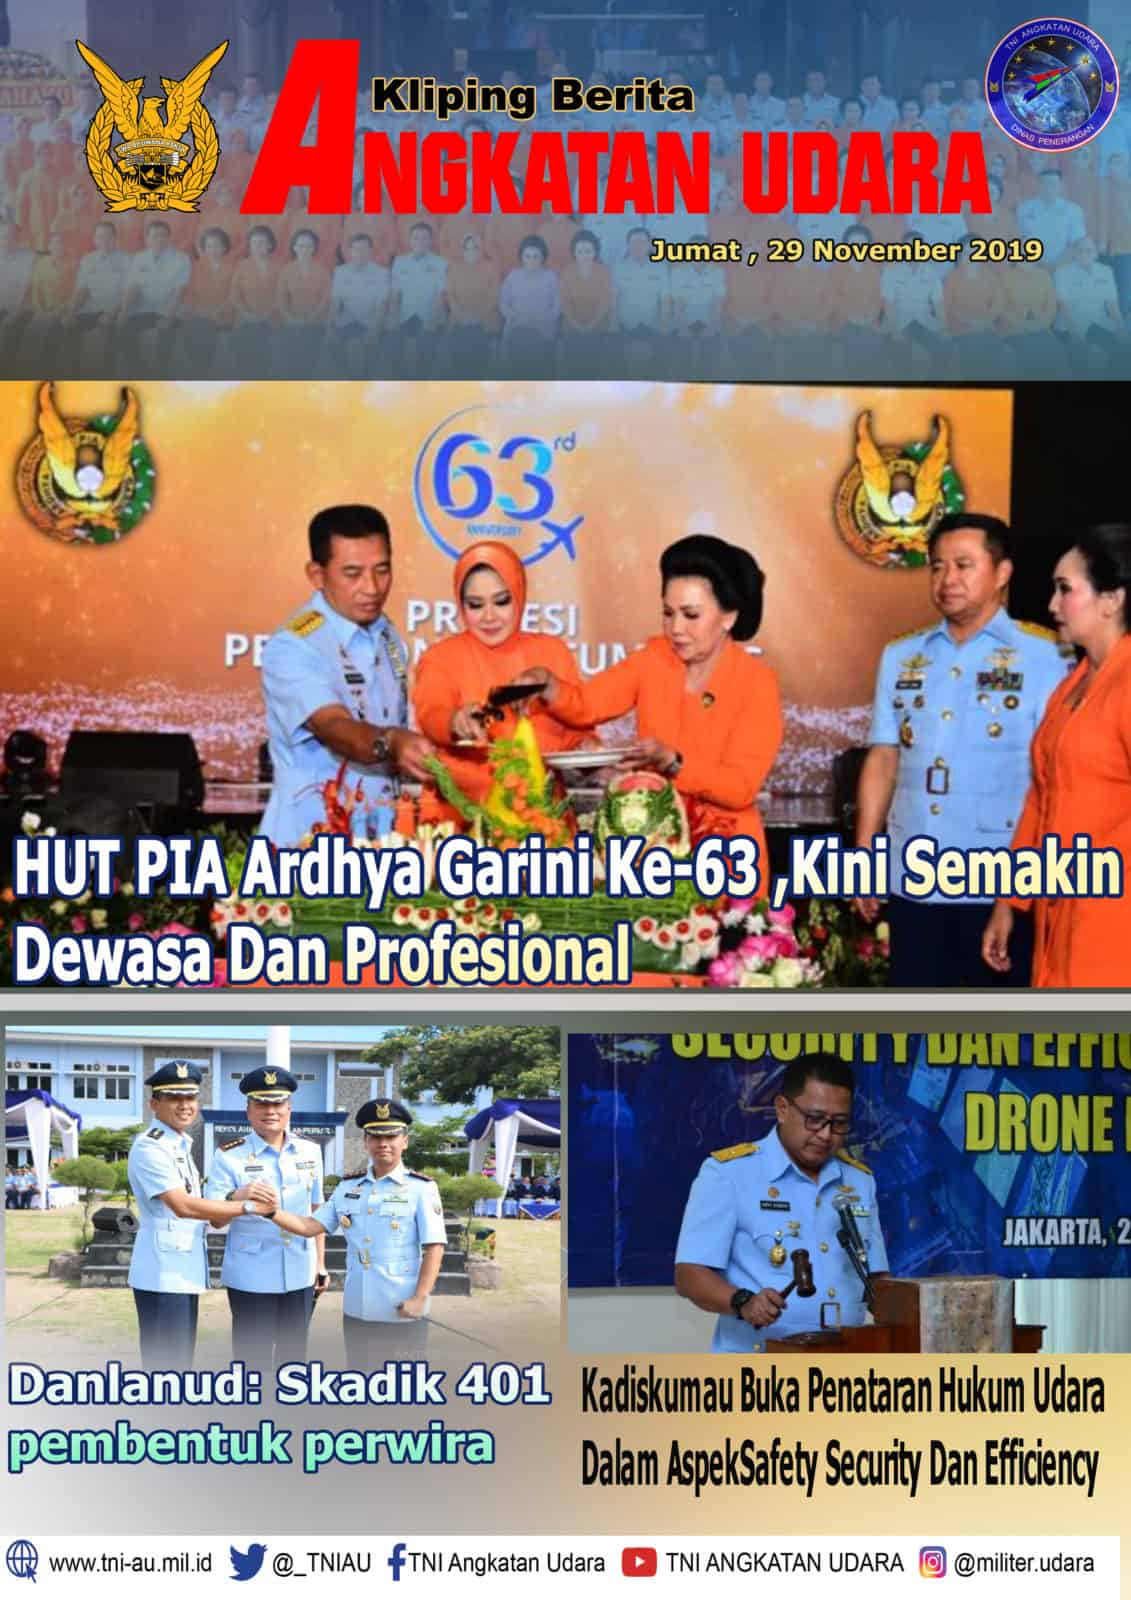 Kliping Berita Media 29 November 2019